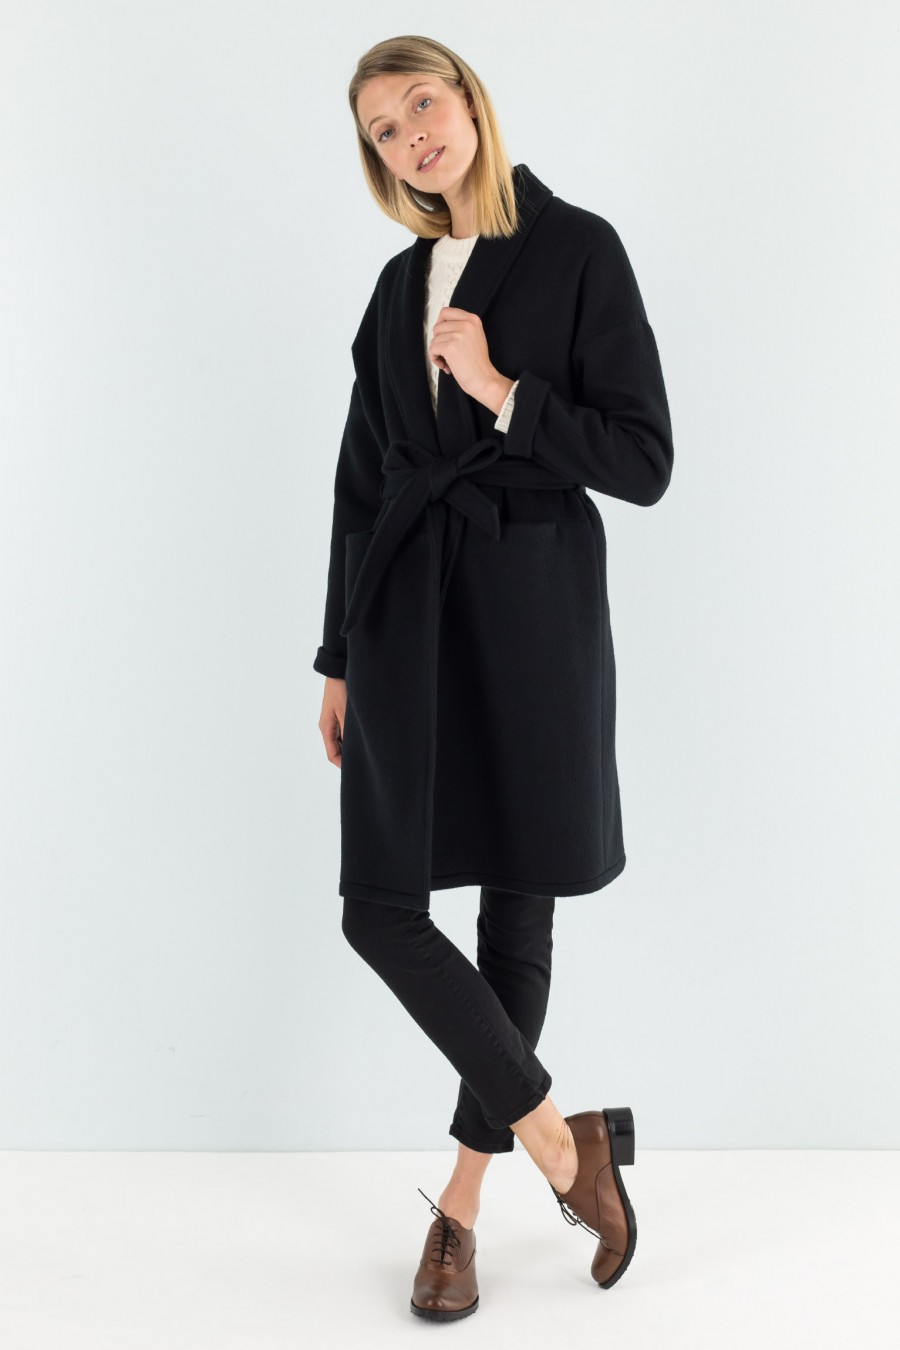 Black cashmere over-sized coat